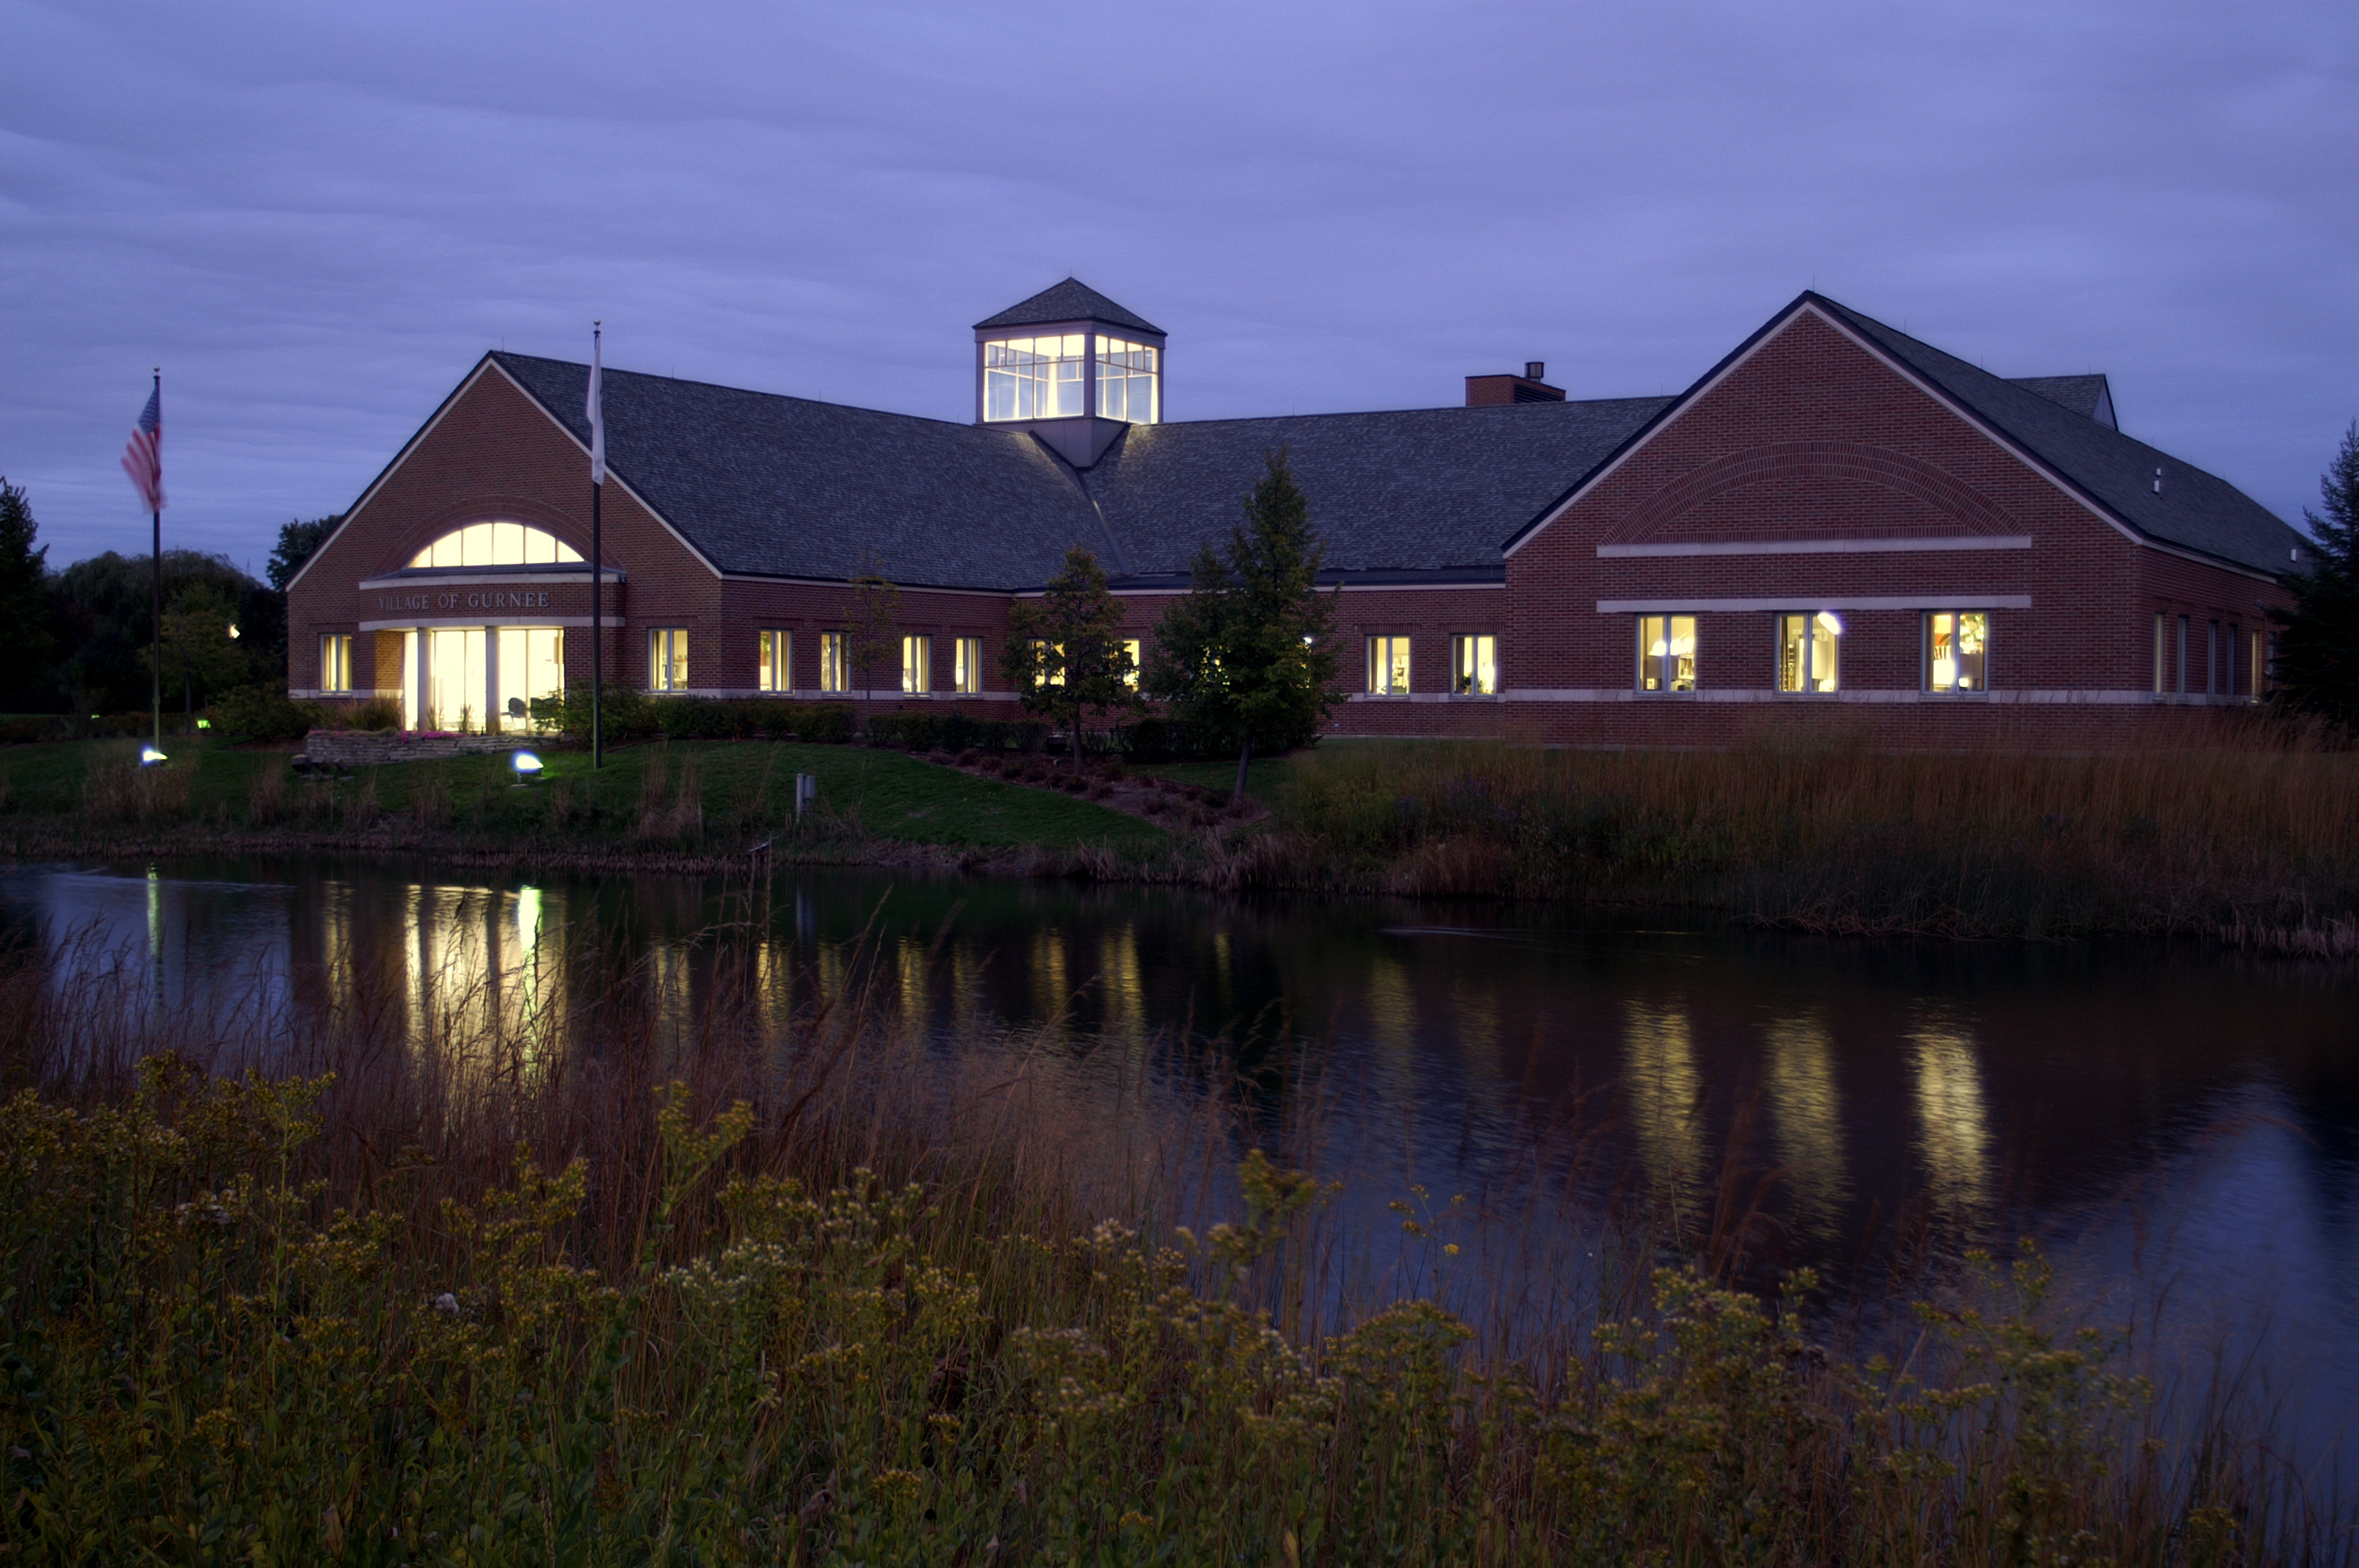 Village Hall at Night